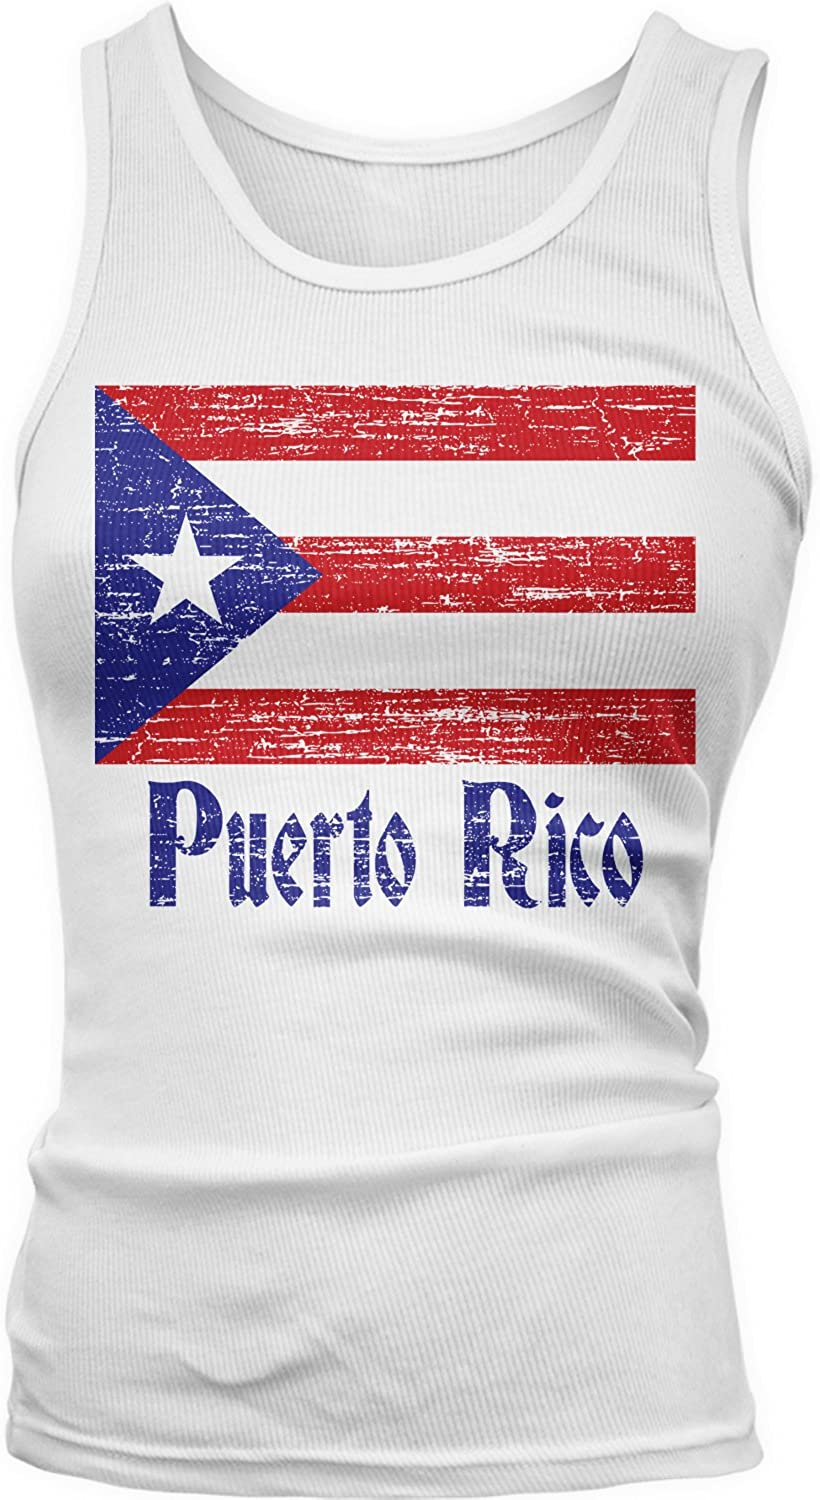 67% OFF of fixed price Amdesco Junior's Faded Excellent Puerto Rican Rico Flag Top Tank